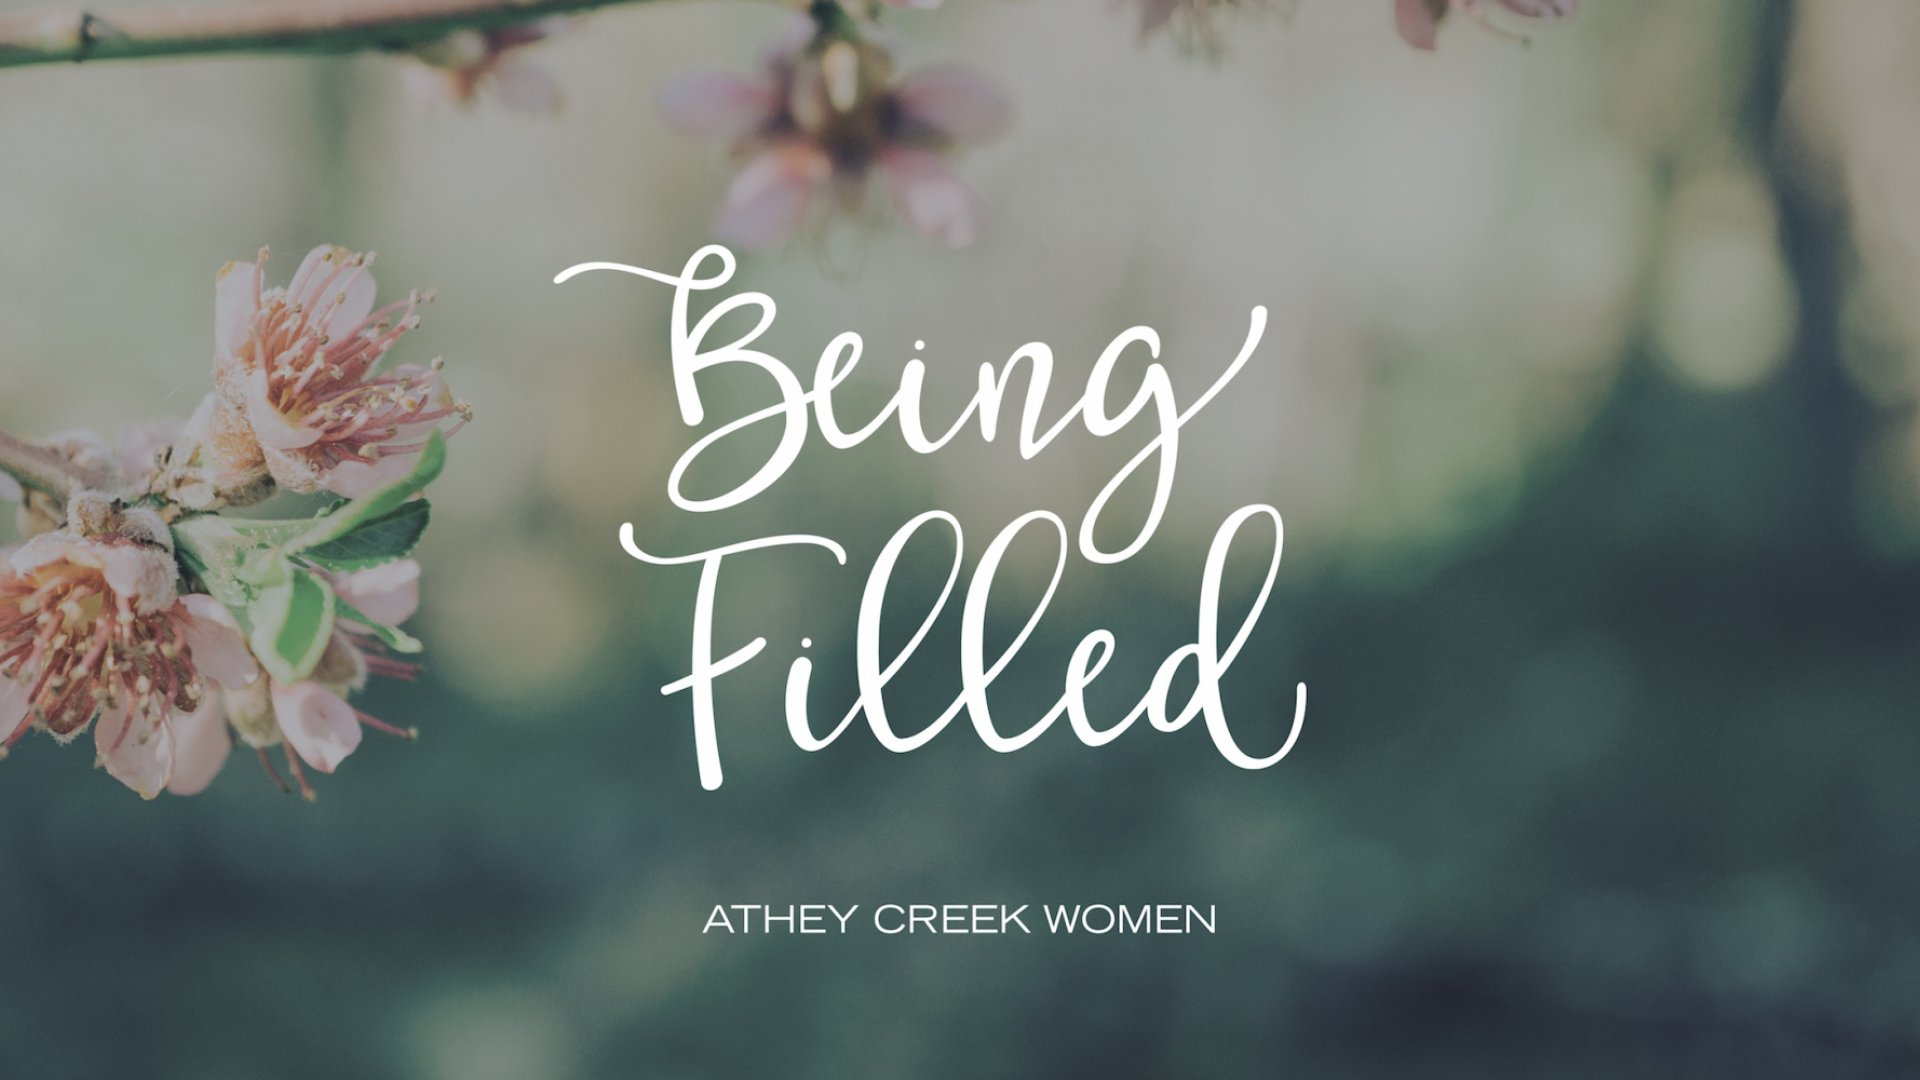 Teaching artwork for Being Filled